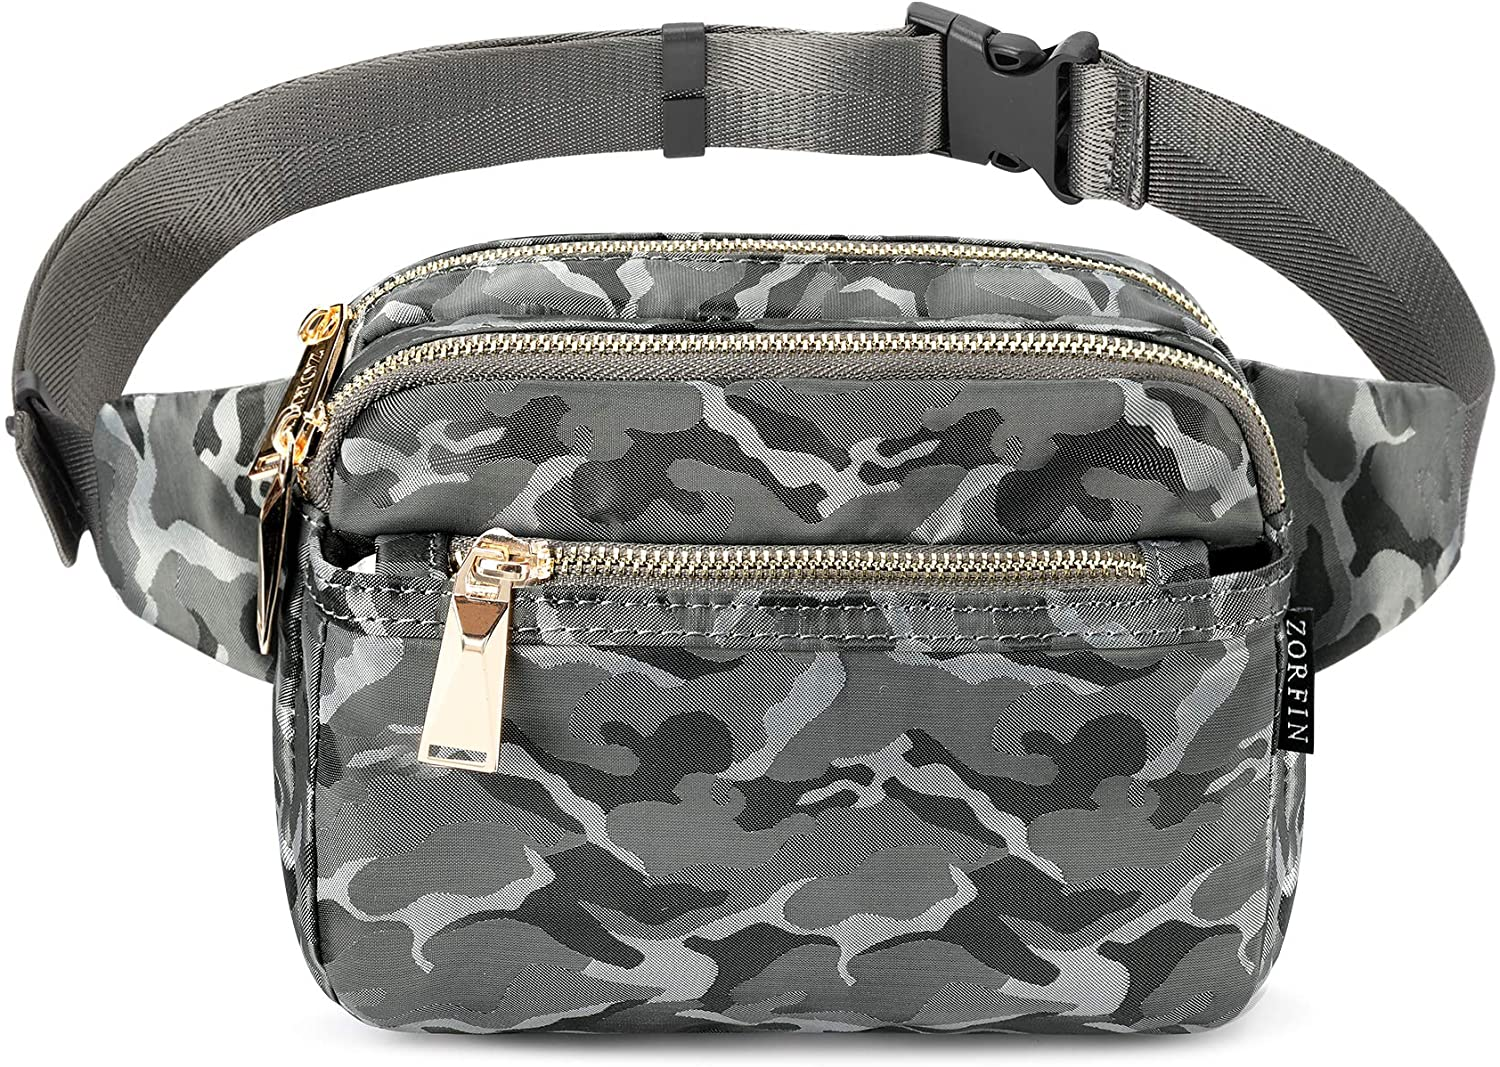 ZORFIN Fanny Pack for Women and Men, Multiple Pockets Waist Pack Belt Bags for Travelling Hiking Cycling (Camo Gray)